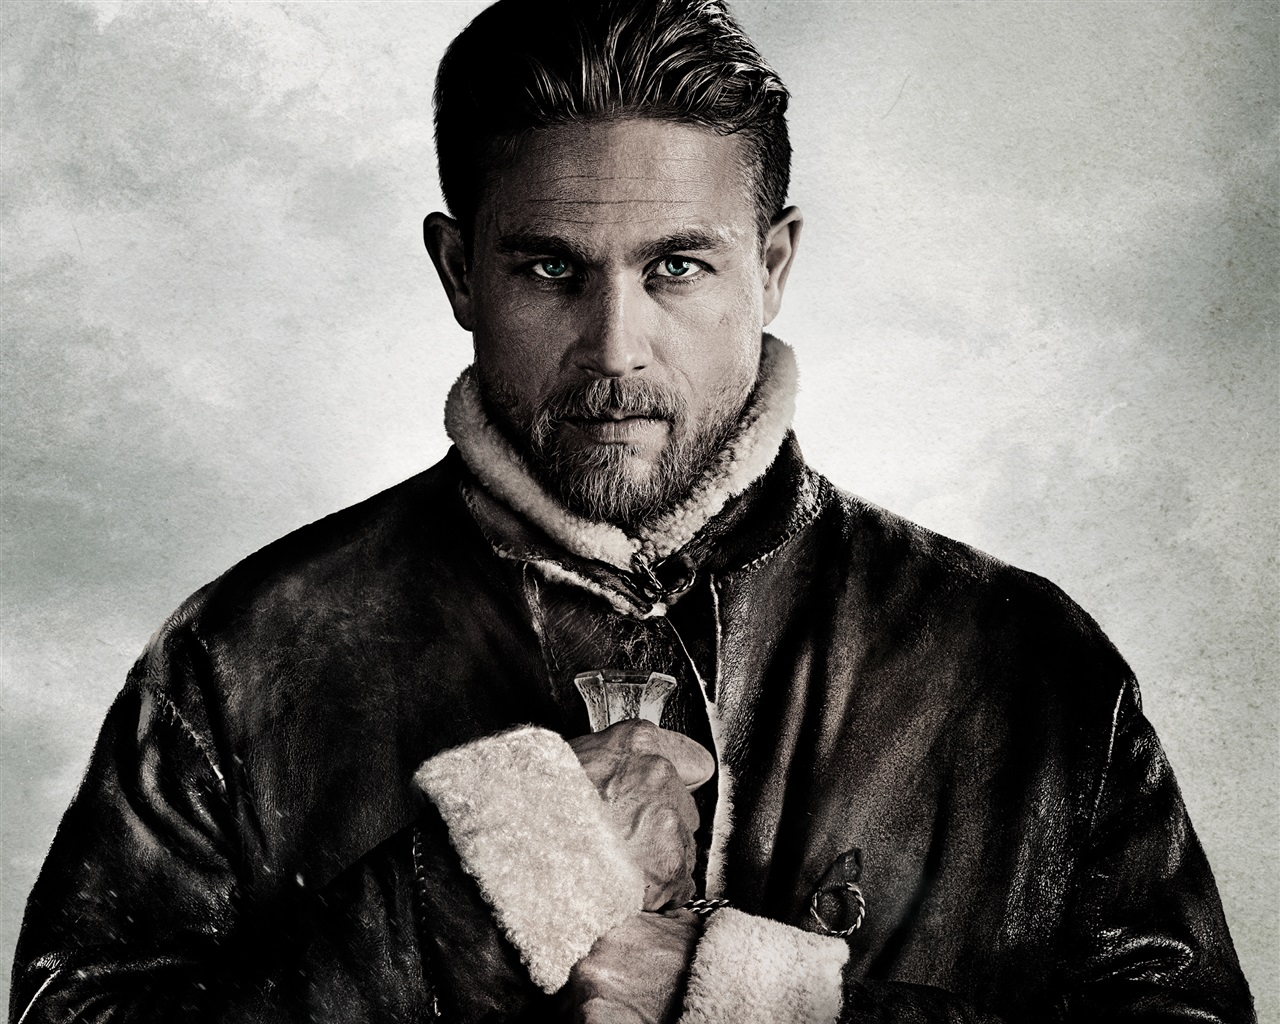 Free Hd Wallpaper Download Charlie Hunnam Wallpaper: Download Wallpaper 1280x1024 Charlie Hunnam, King Arthur